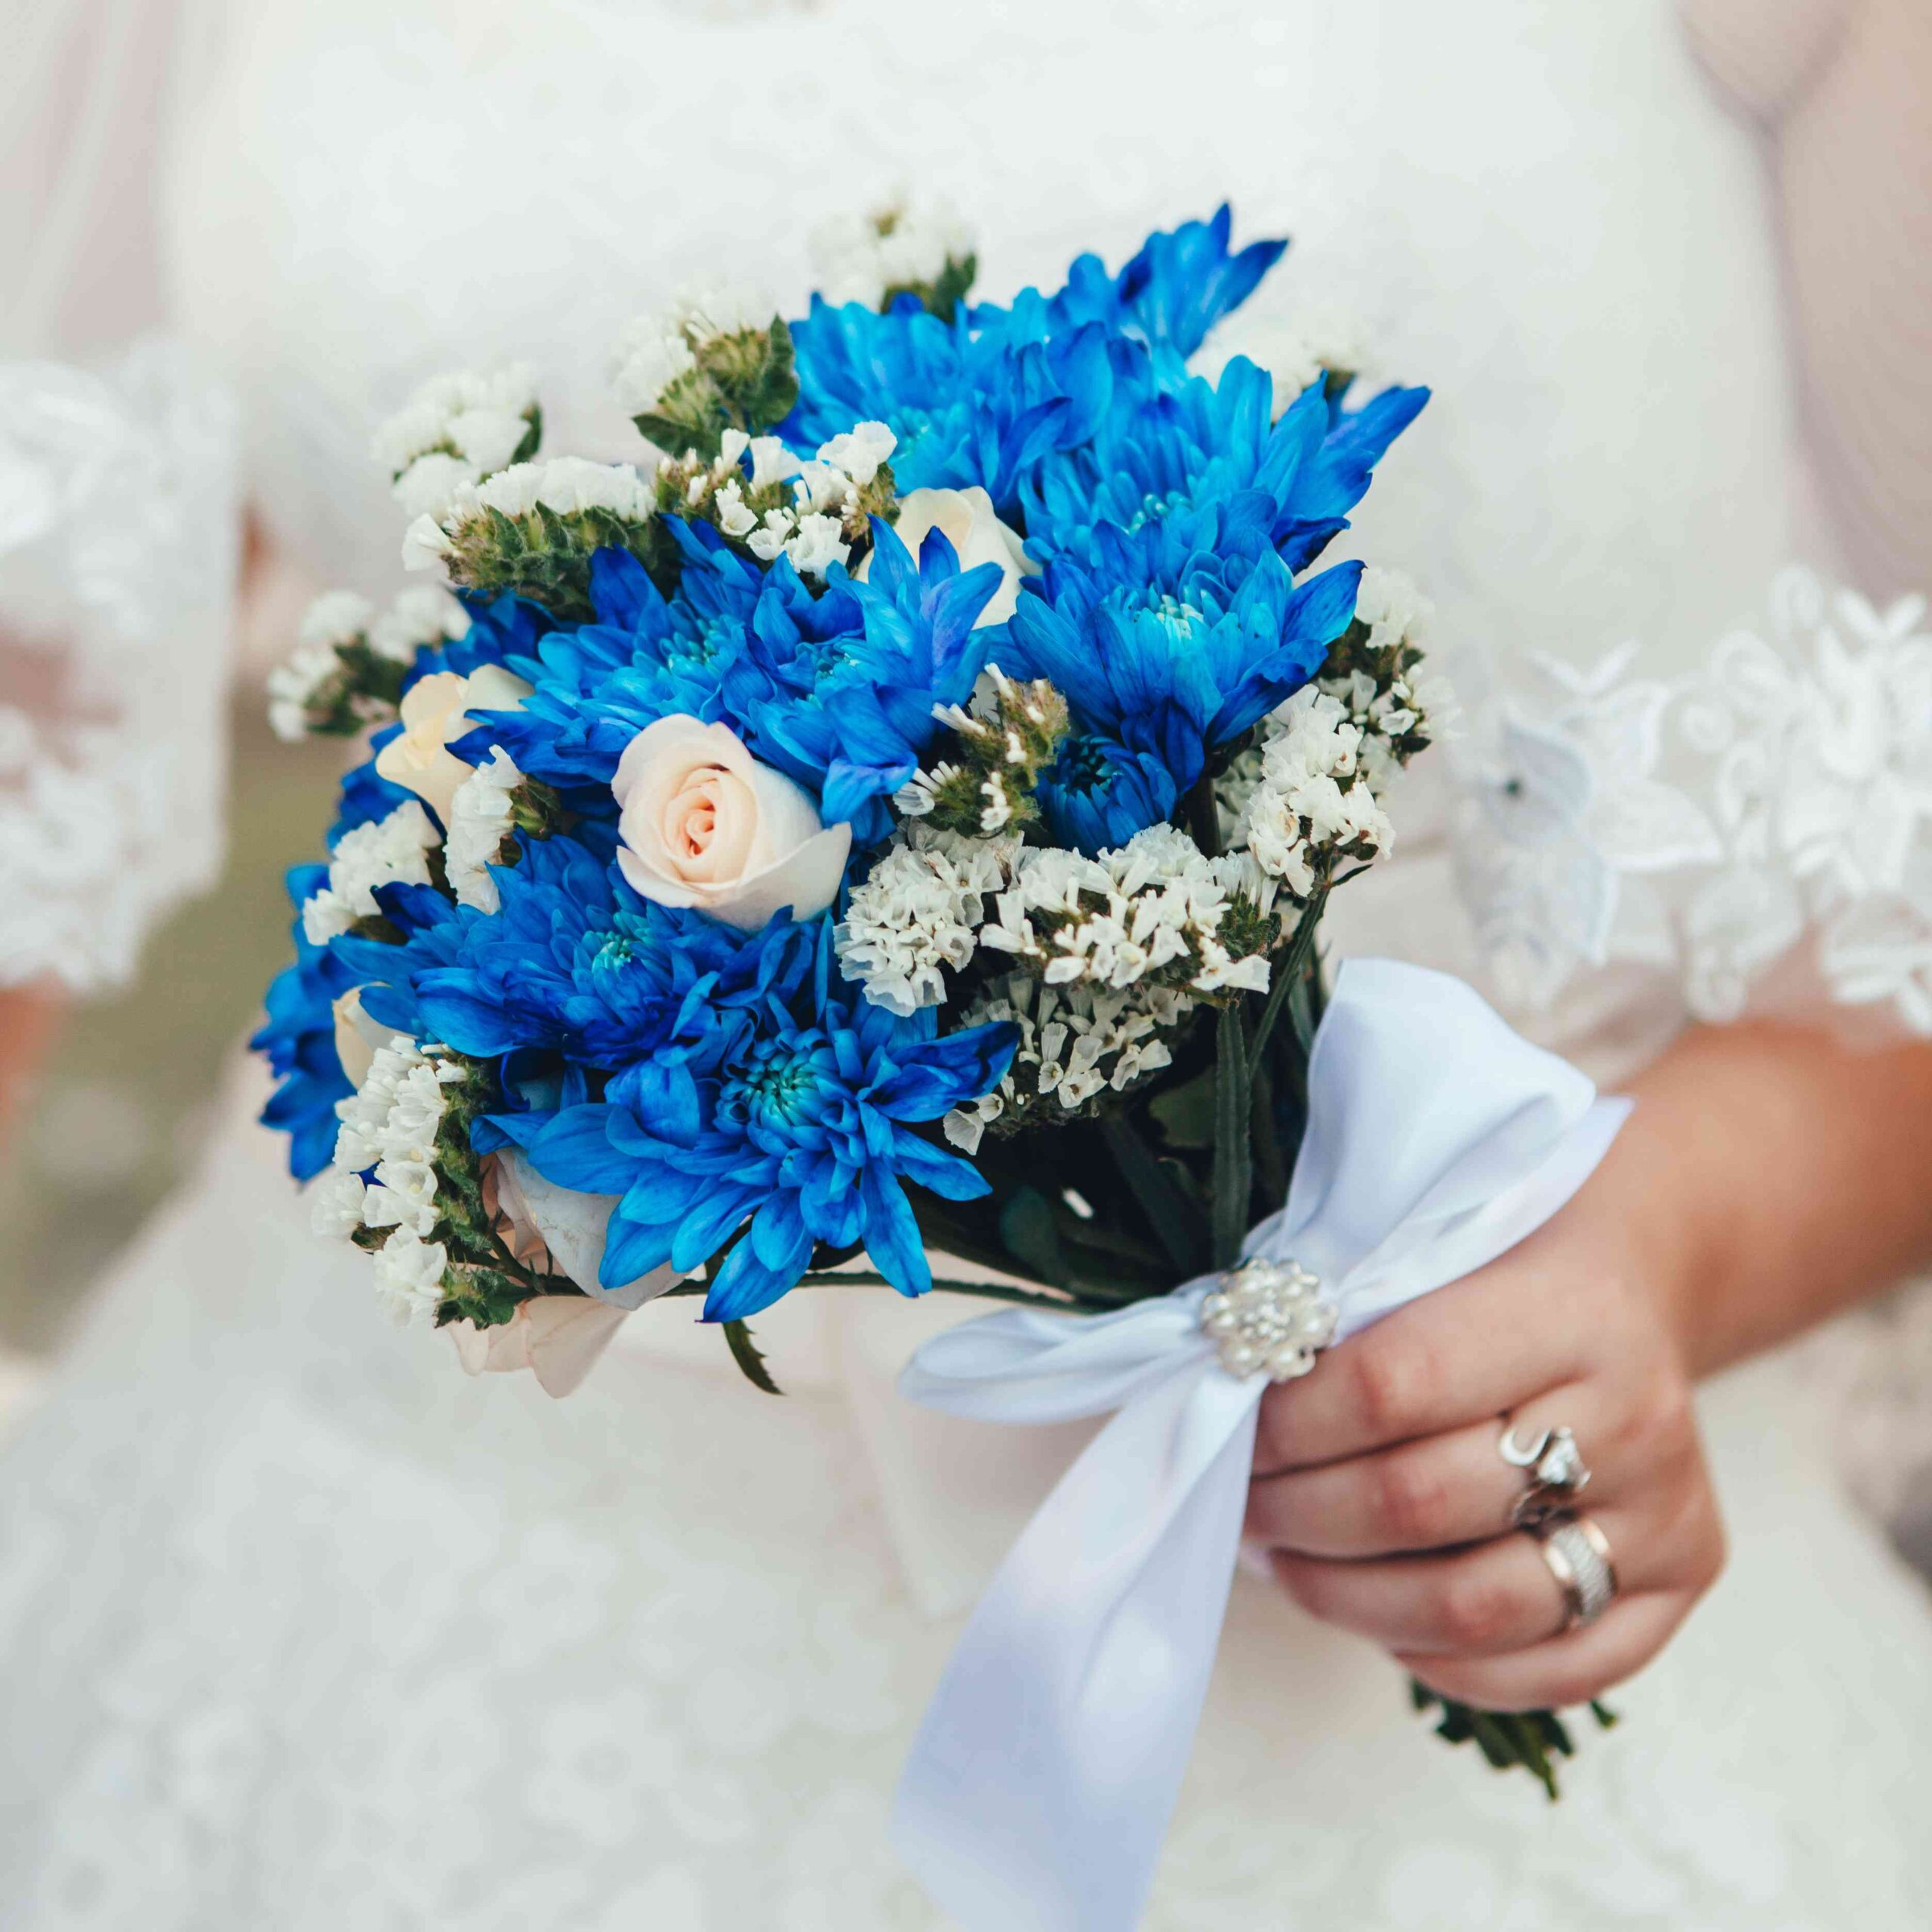 choose blue roses wedding bouquets for your wedding 5 scaled - Choose Blue Roses Wedding Bouquets for Your Wedding